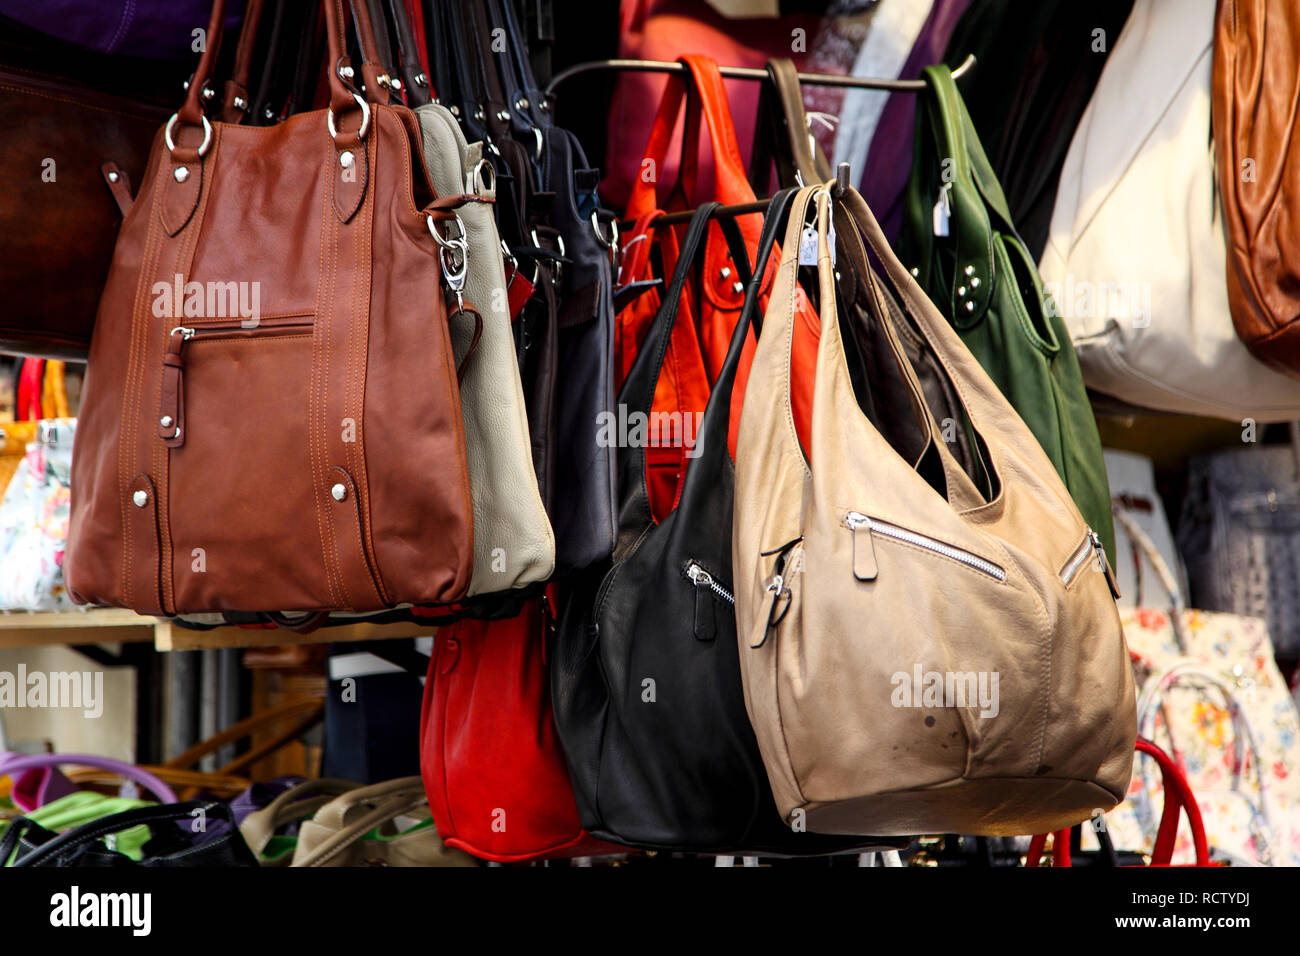 c6bfd98011 Leather handbags on display at Mercato Nuovo in Florence. - Stock Image